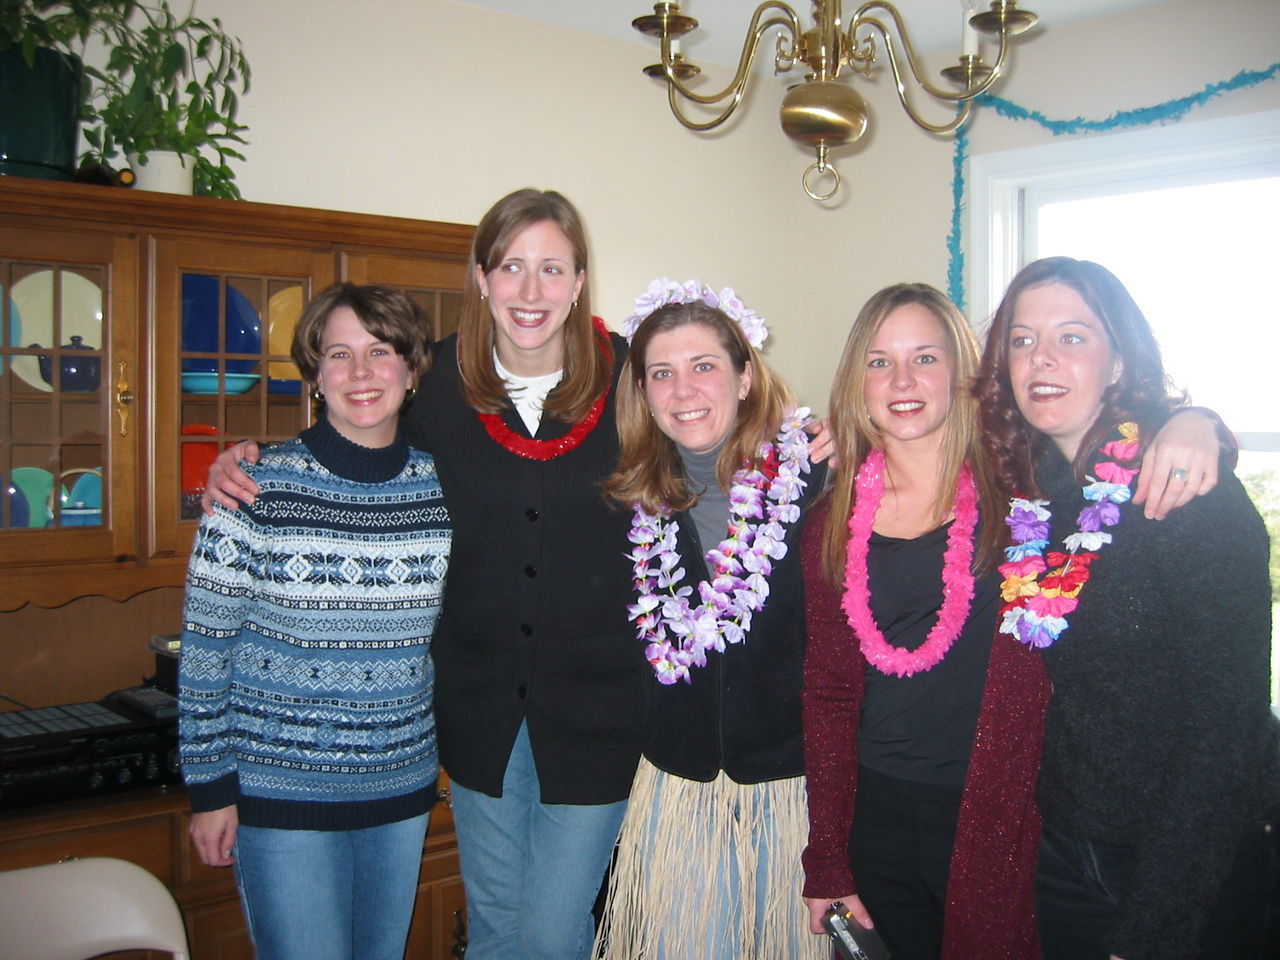 Ilsa and her bridal party, Amy, Amy, Erica, and Cara